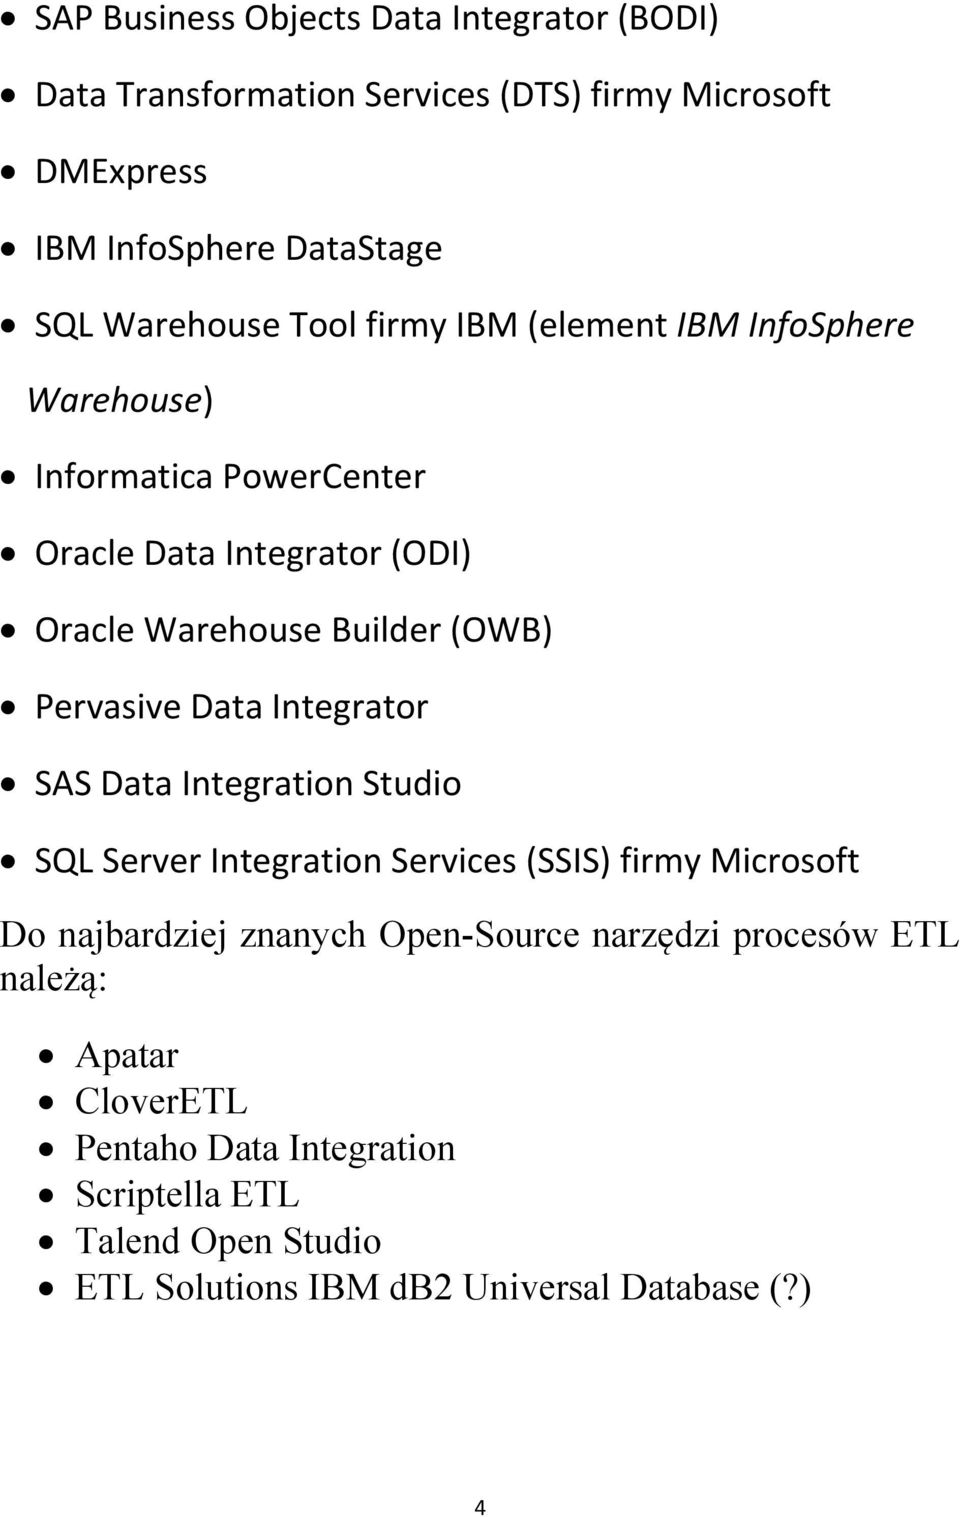 Data Integrator SAS Data Integration Studio SQL Server Integration Services (SSIS) firmy Microsoft Do najbardziej znanych Open-Source narzędzi